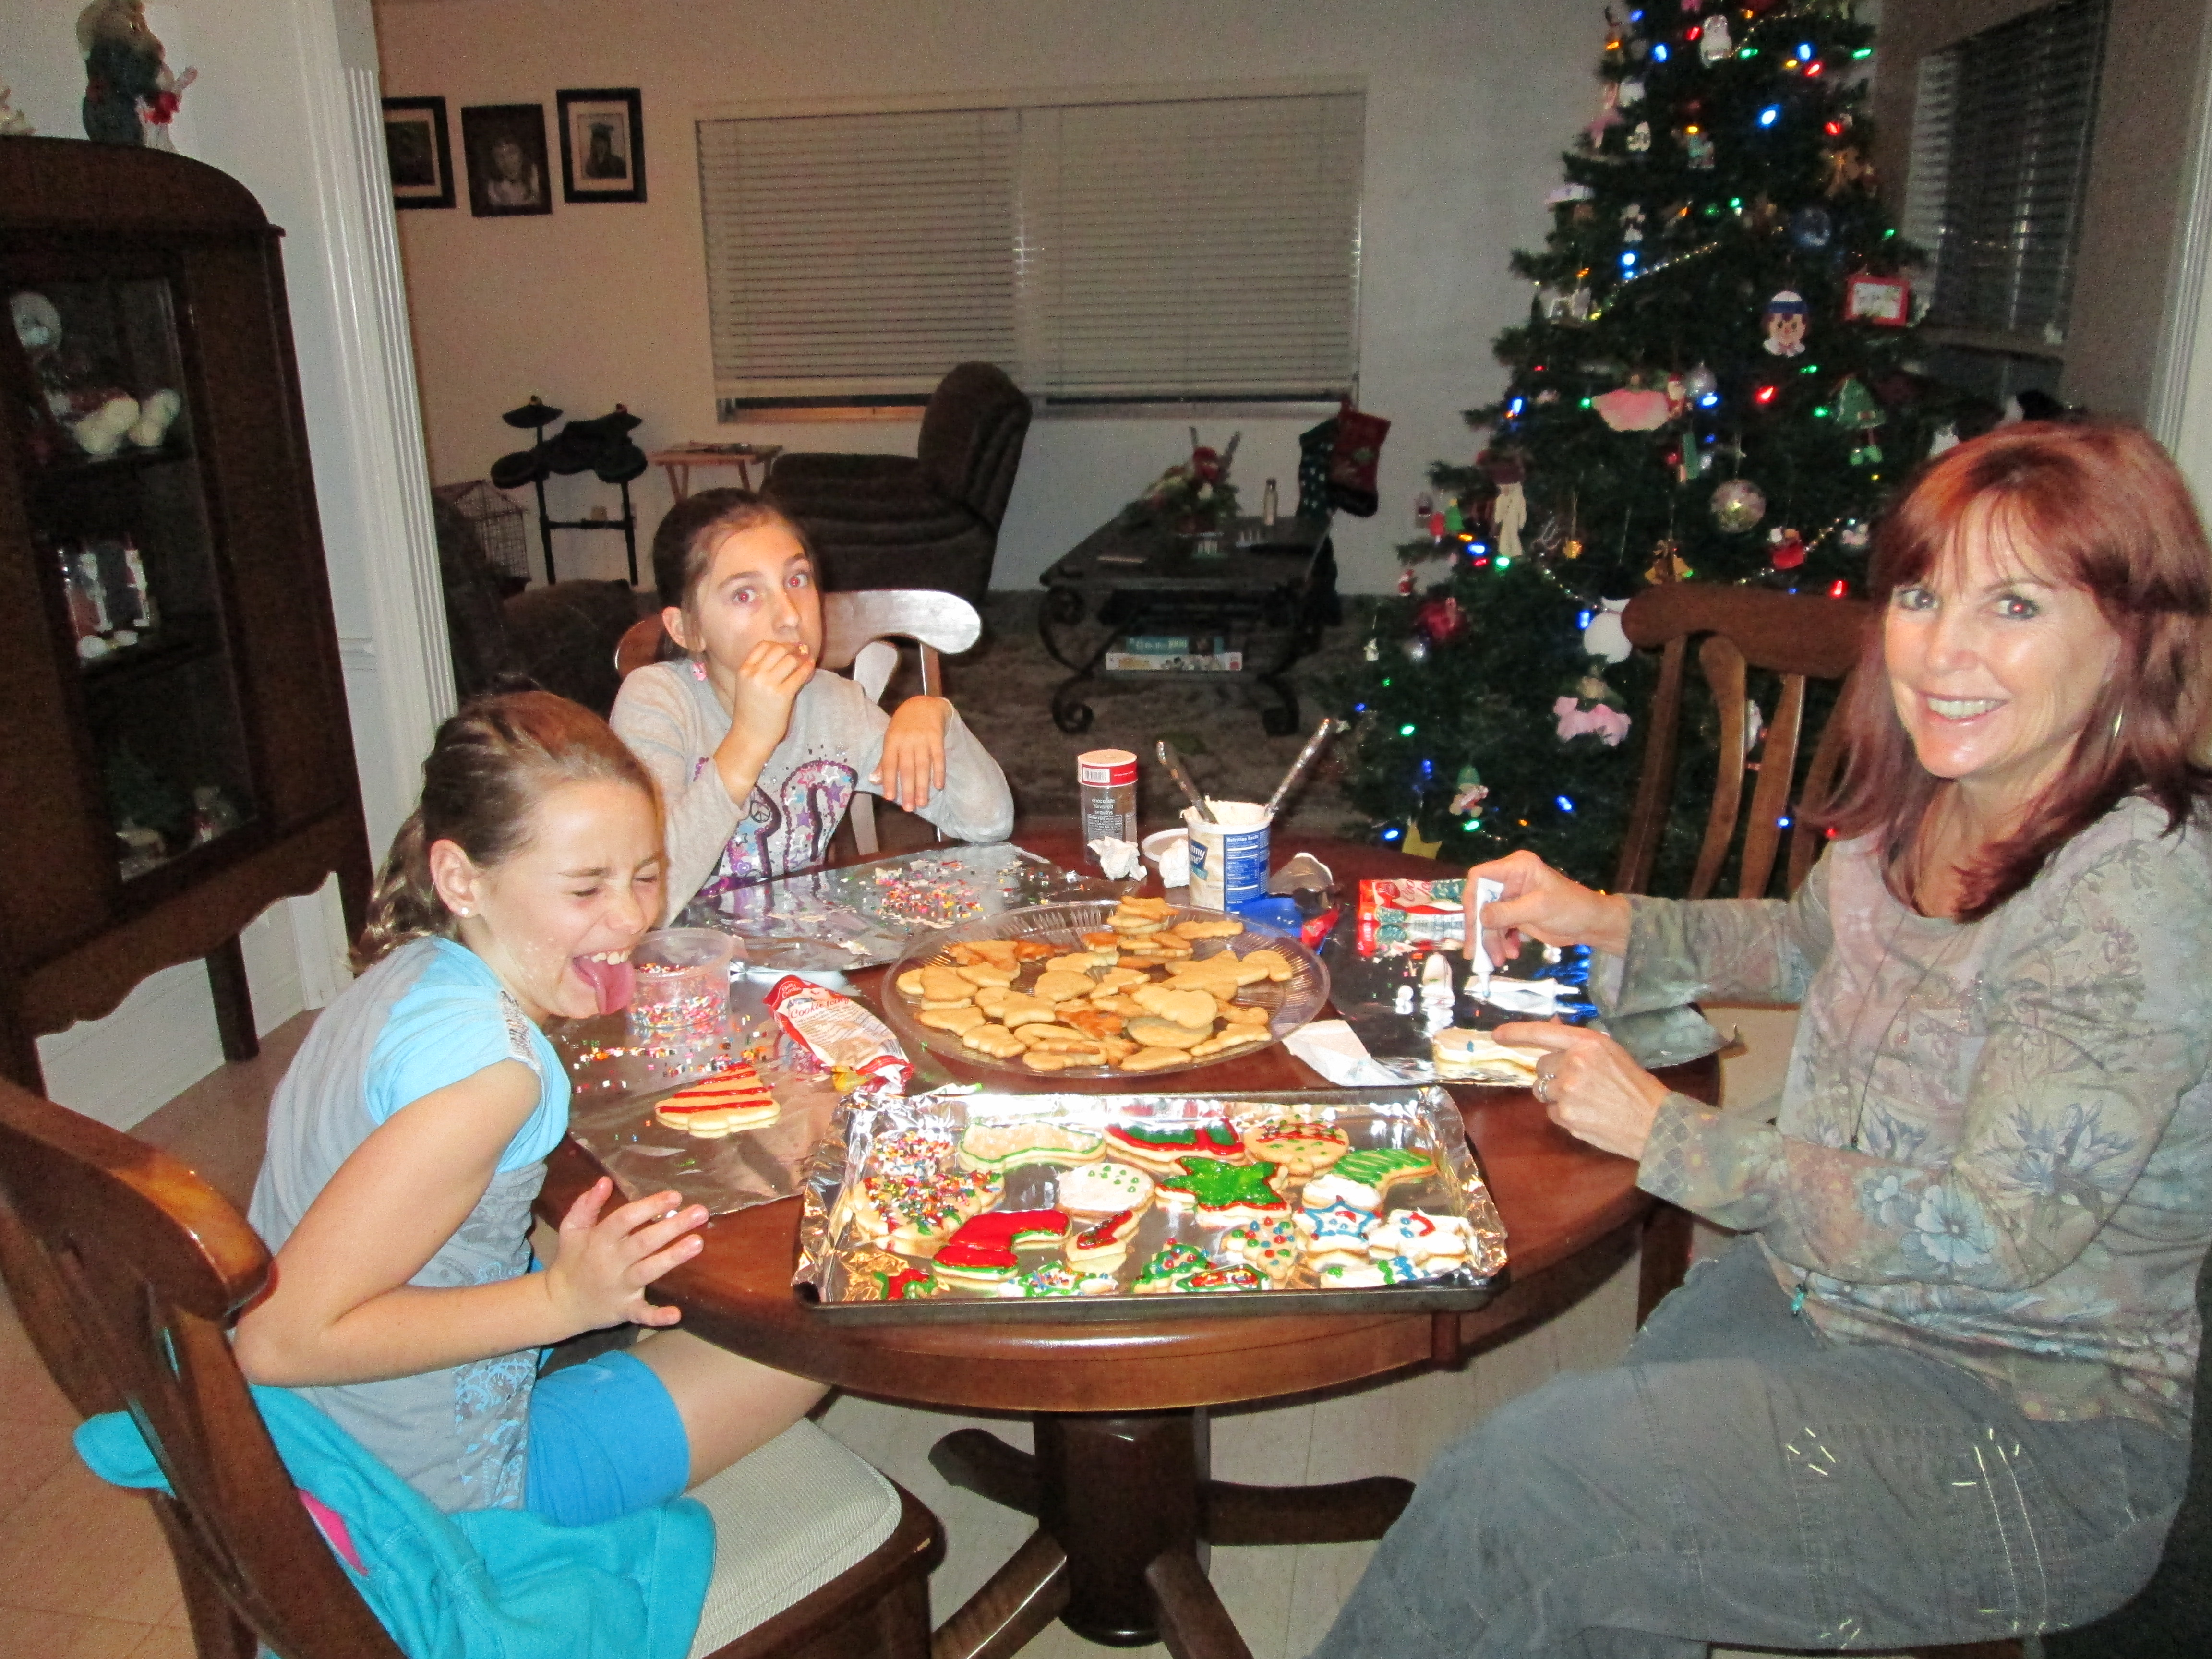 Decorating Christmas cookies with our girls.